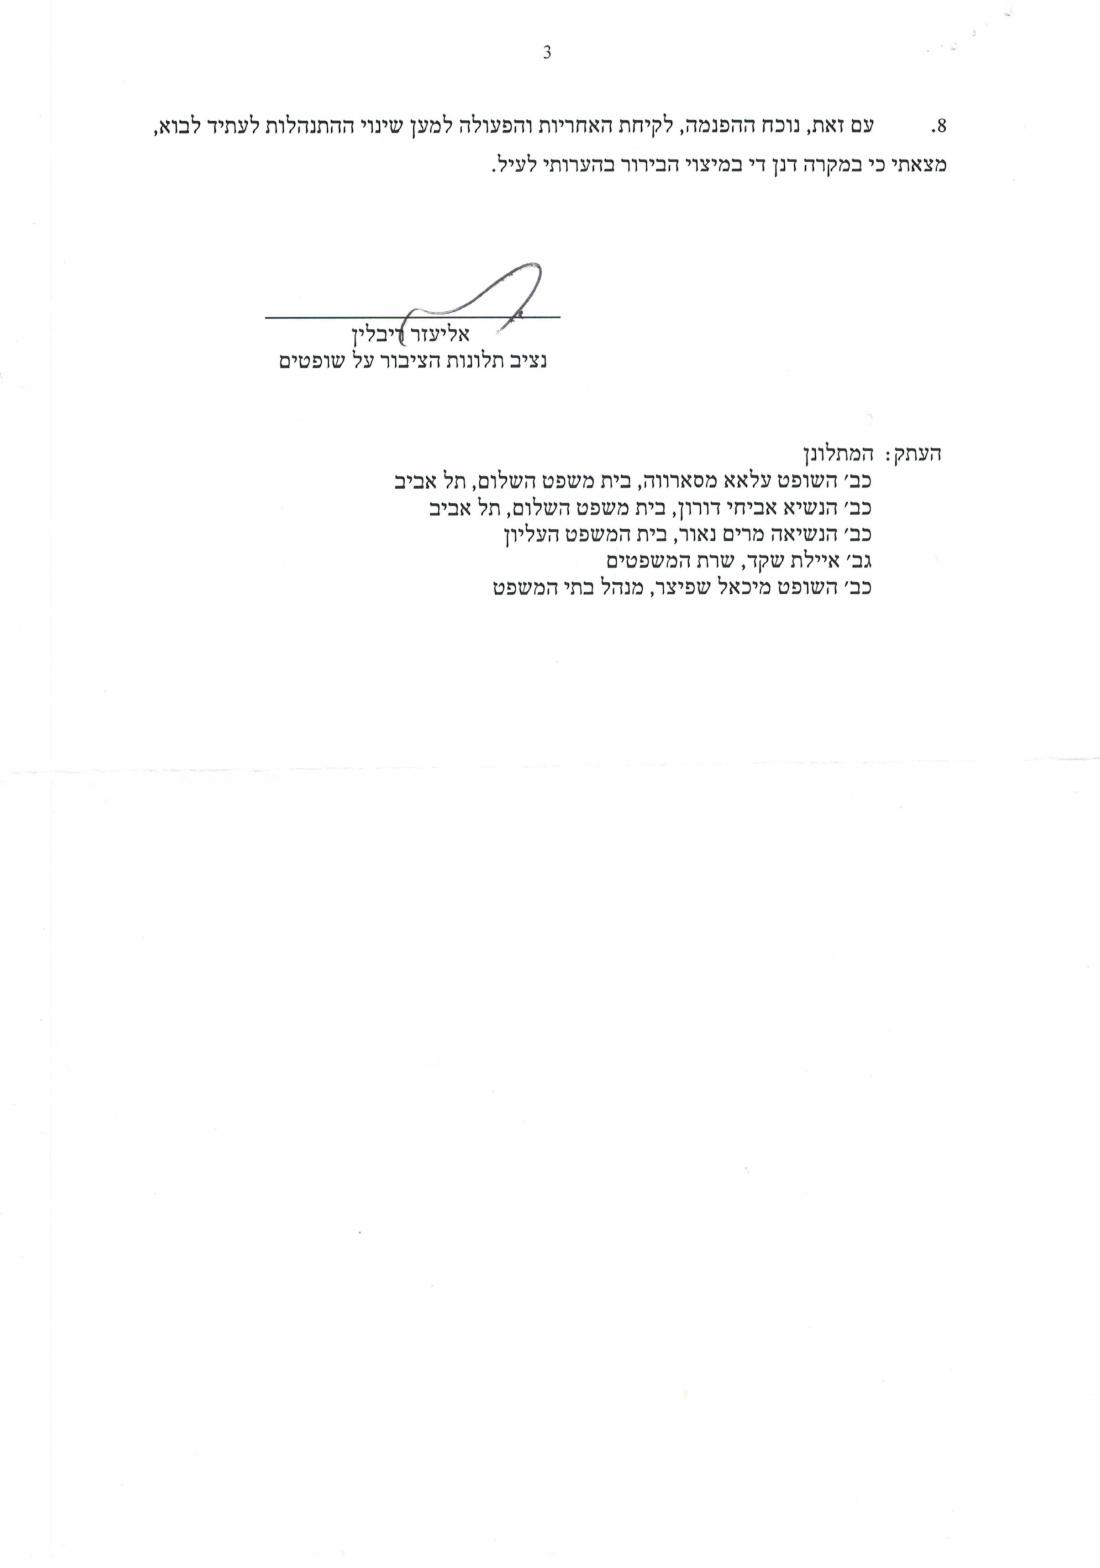 Document-page-003